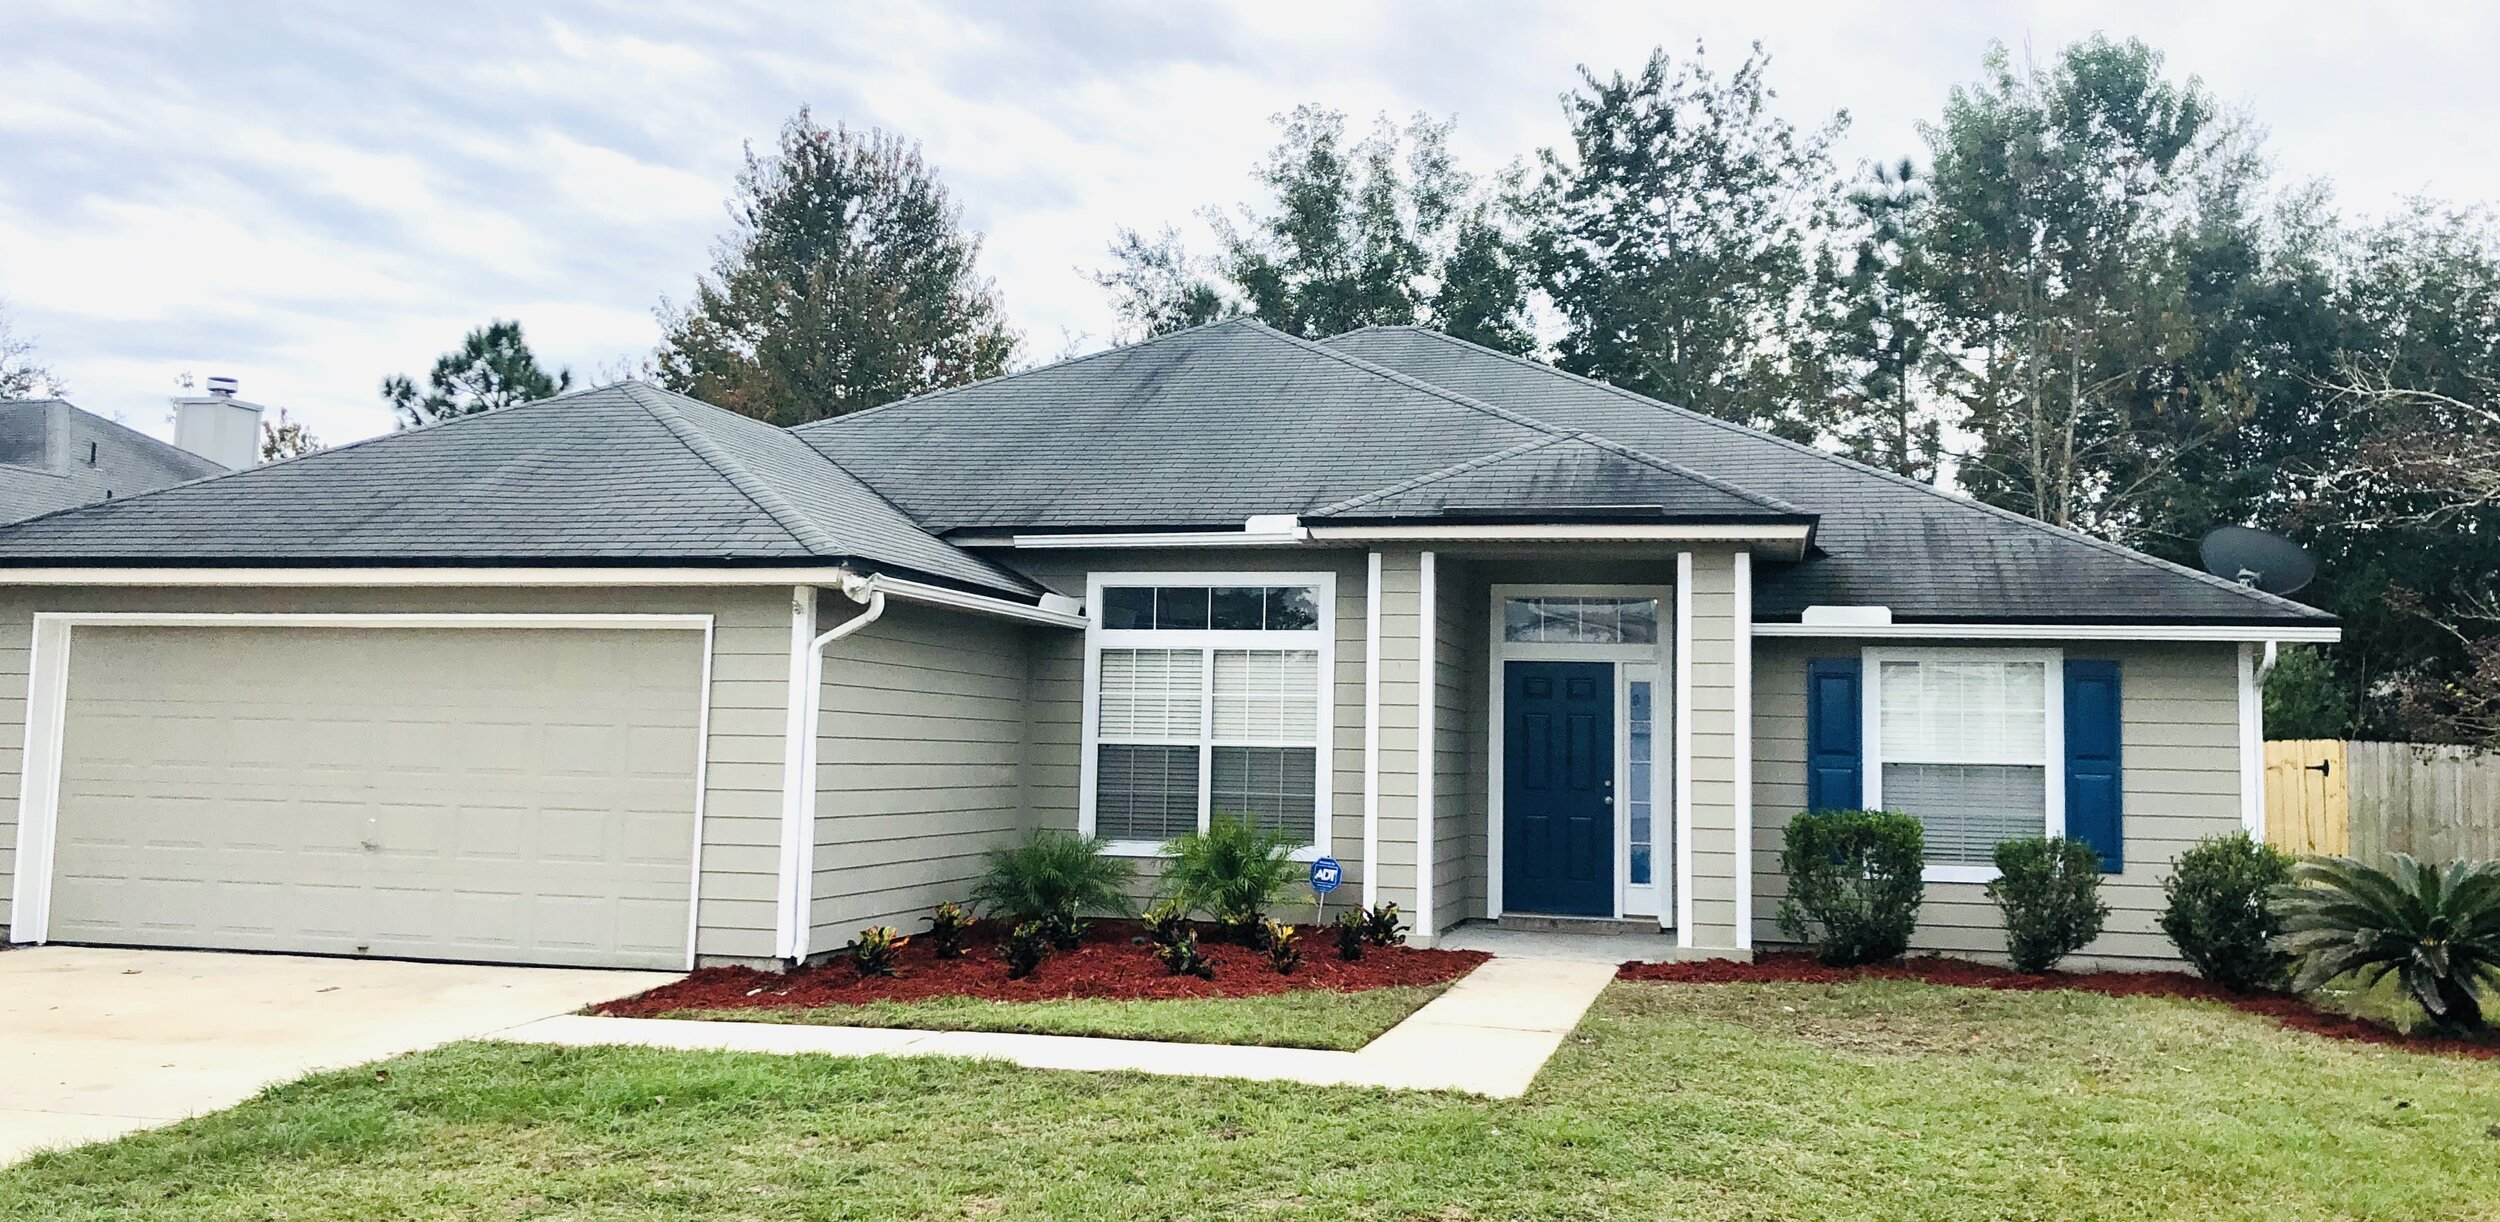 SOLD - Green Cove Springs, FL